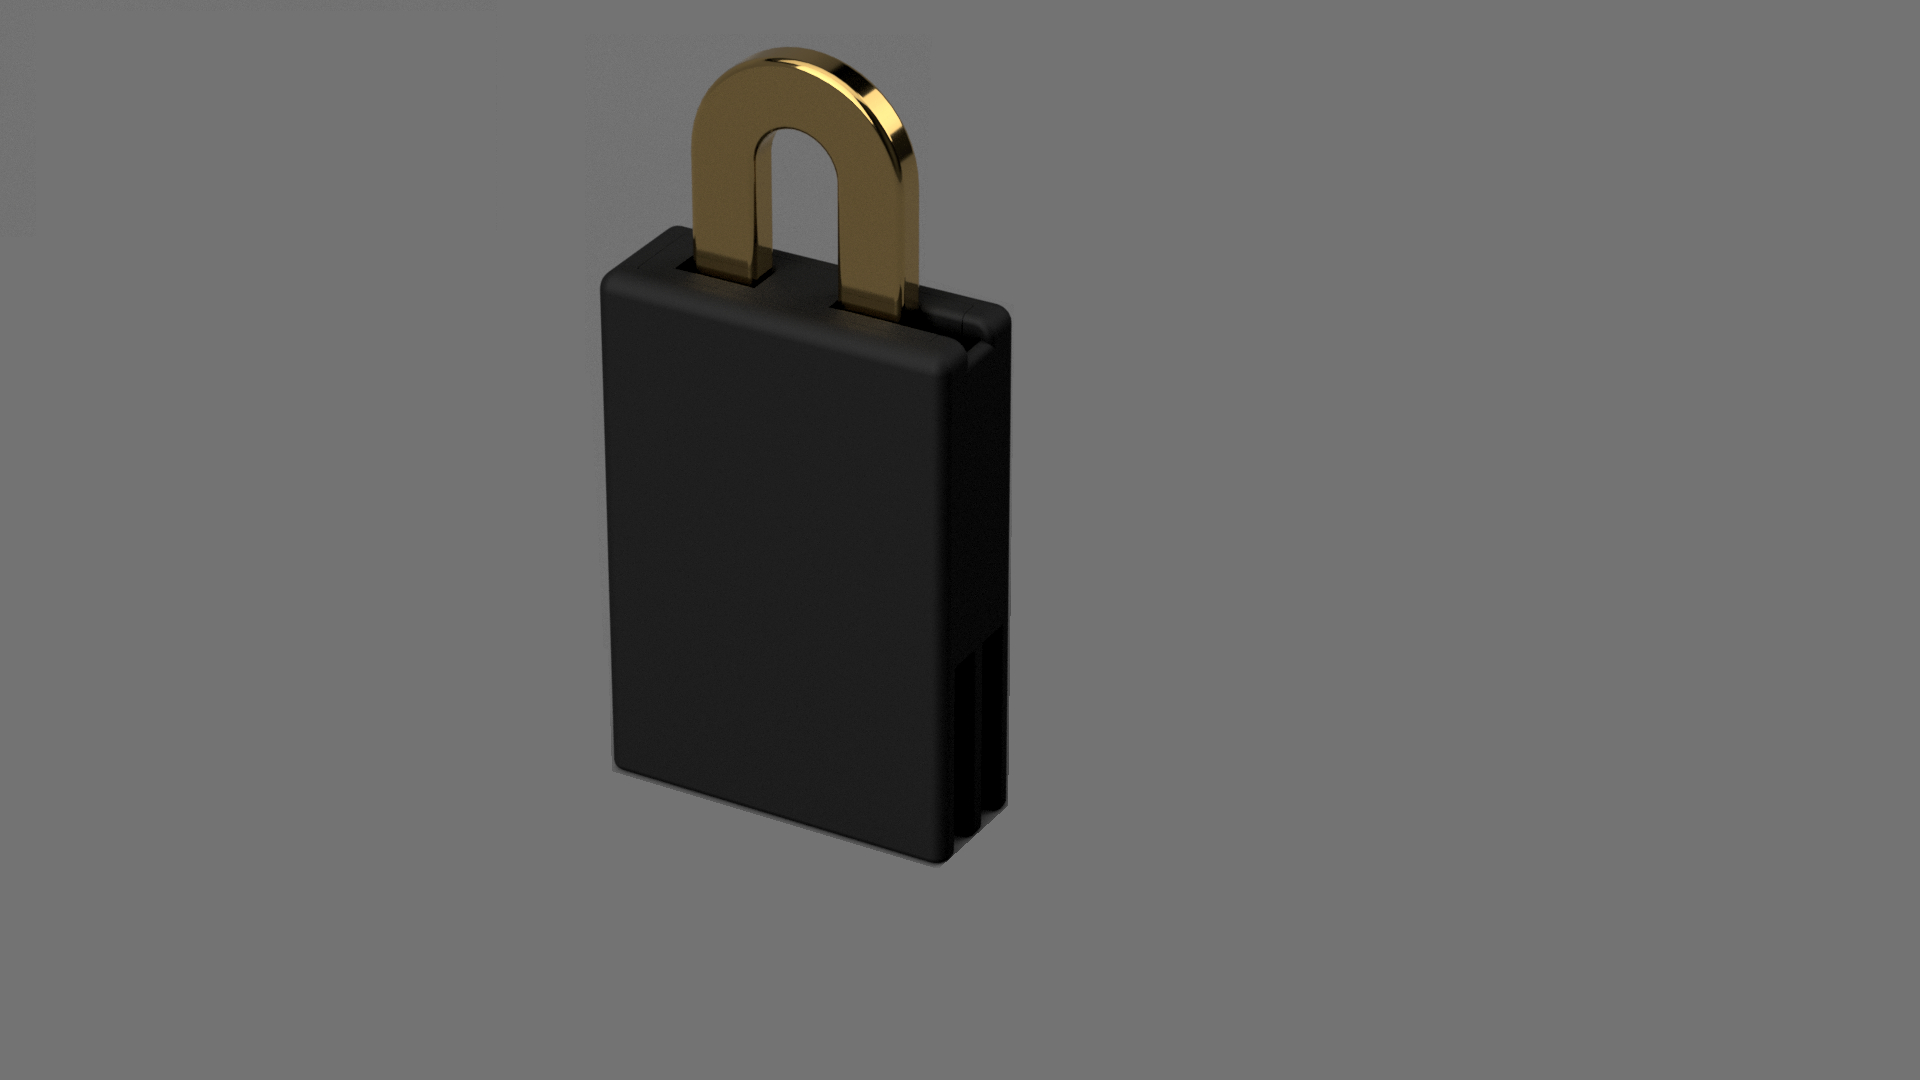 3D Printed The Puzzle Lockevolvingextrusions | Pinshape - 3D Printable Lock Puzzle